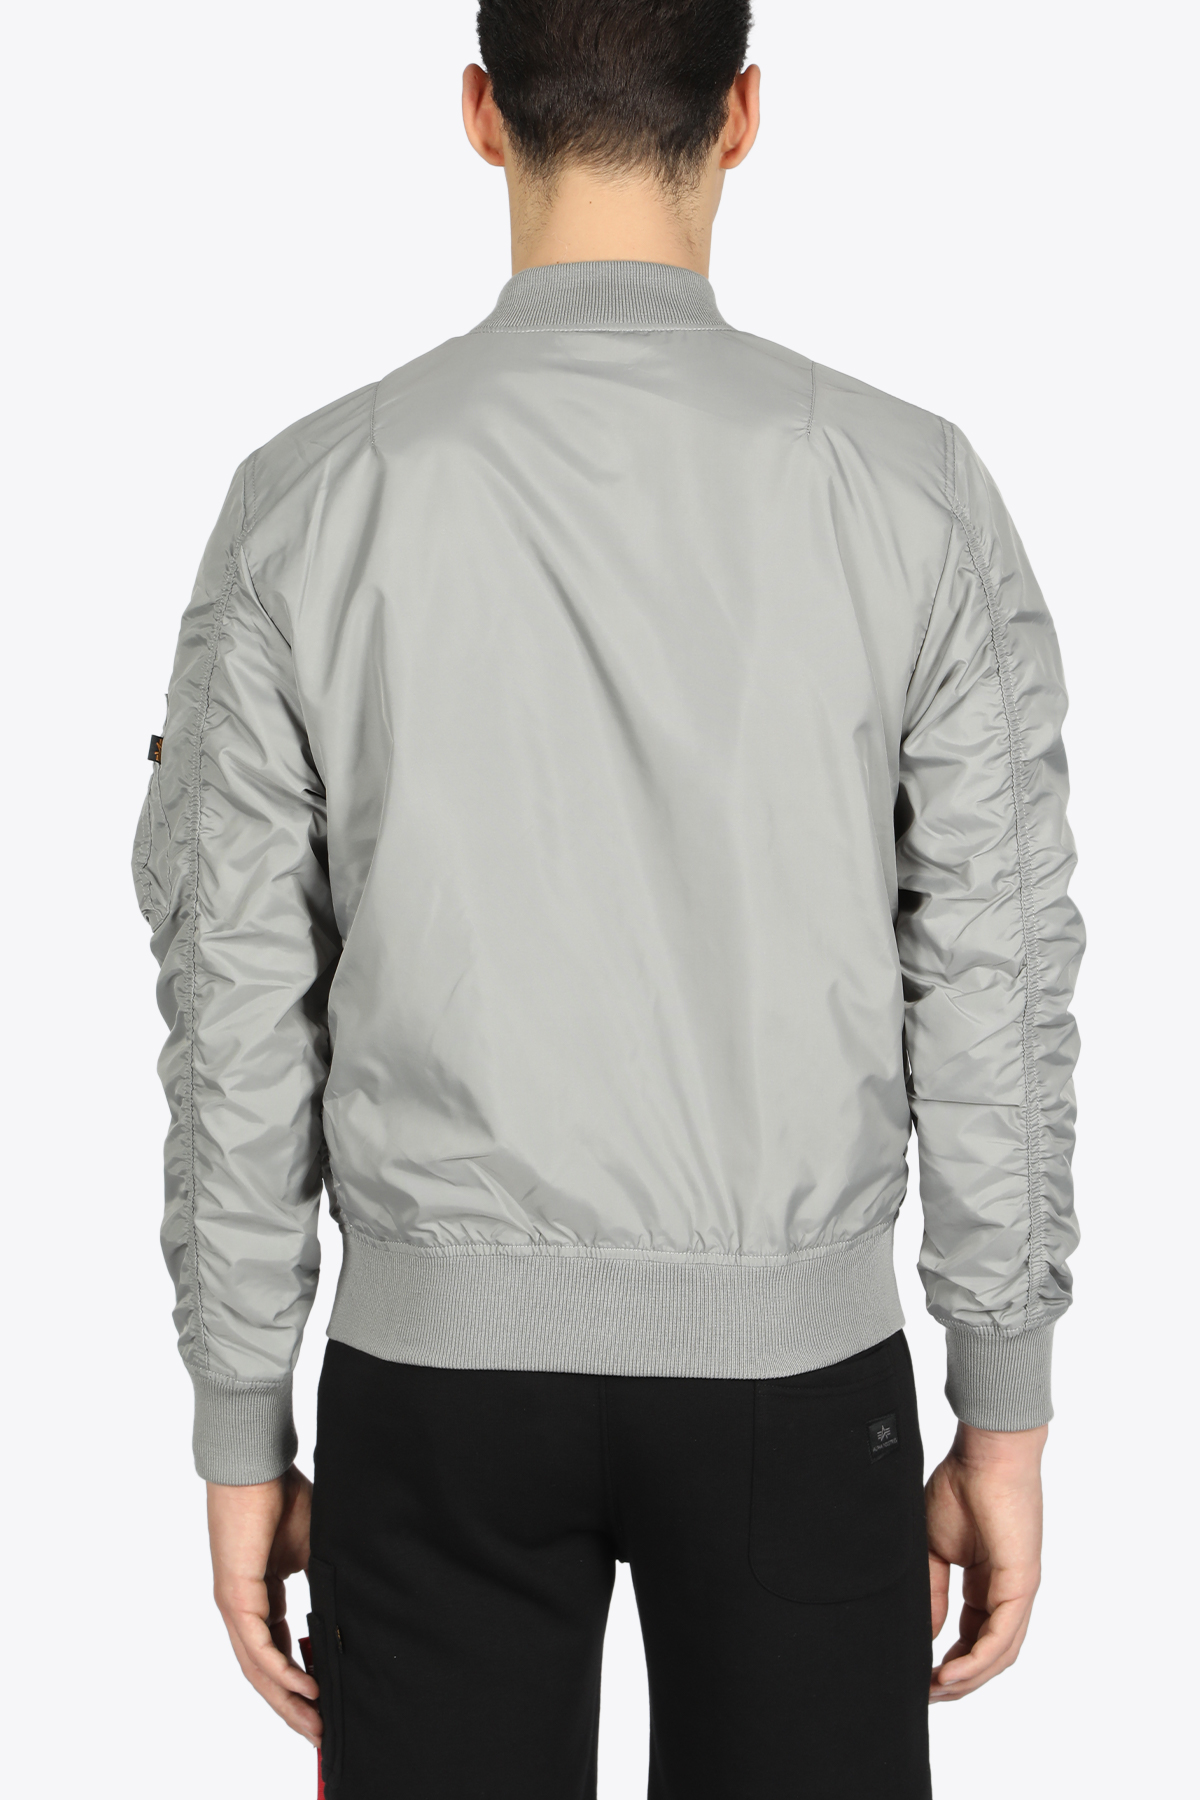 ma-1 tt nasa reversible ALPHA INDUSTRIES | -276790253 | 186101 MA-2 TT NASA REVERSIBLE II31